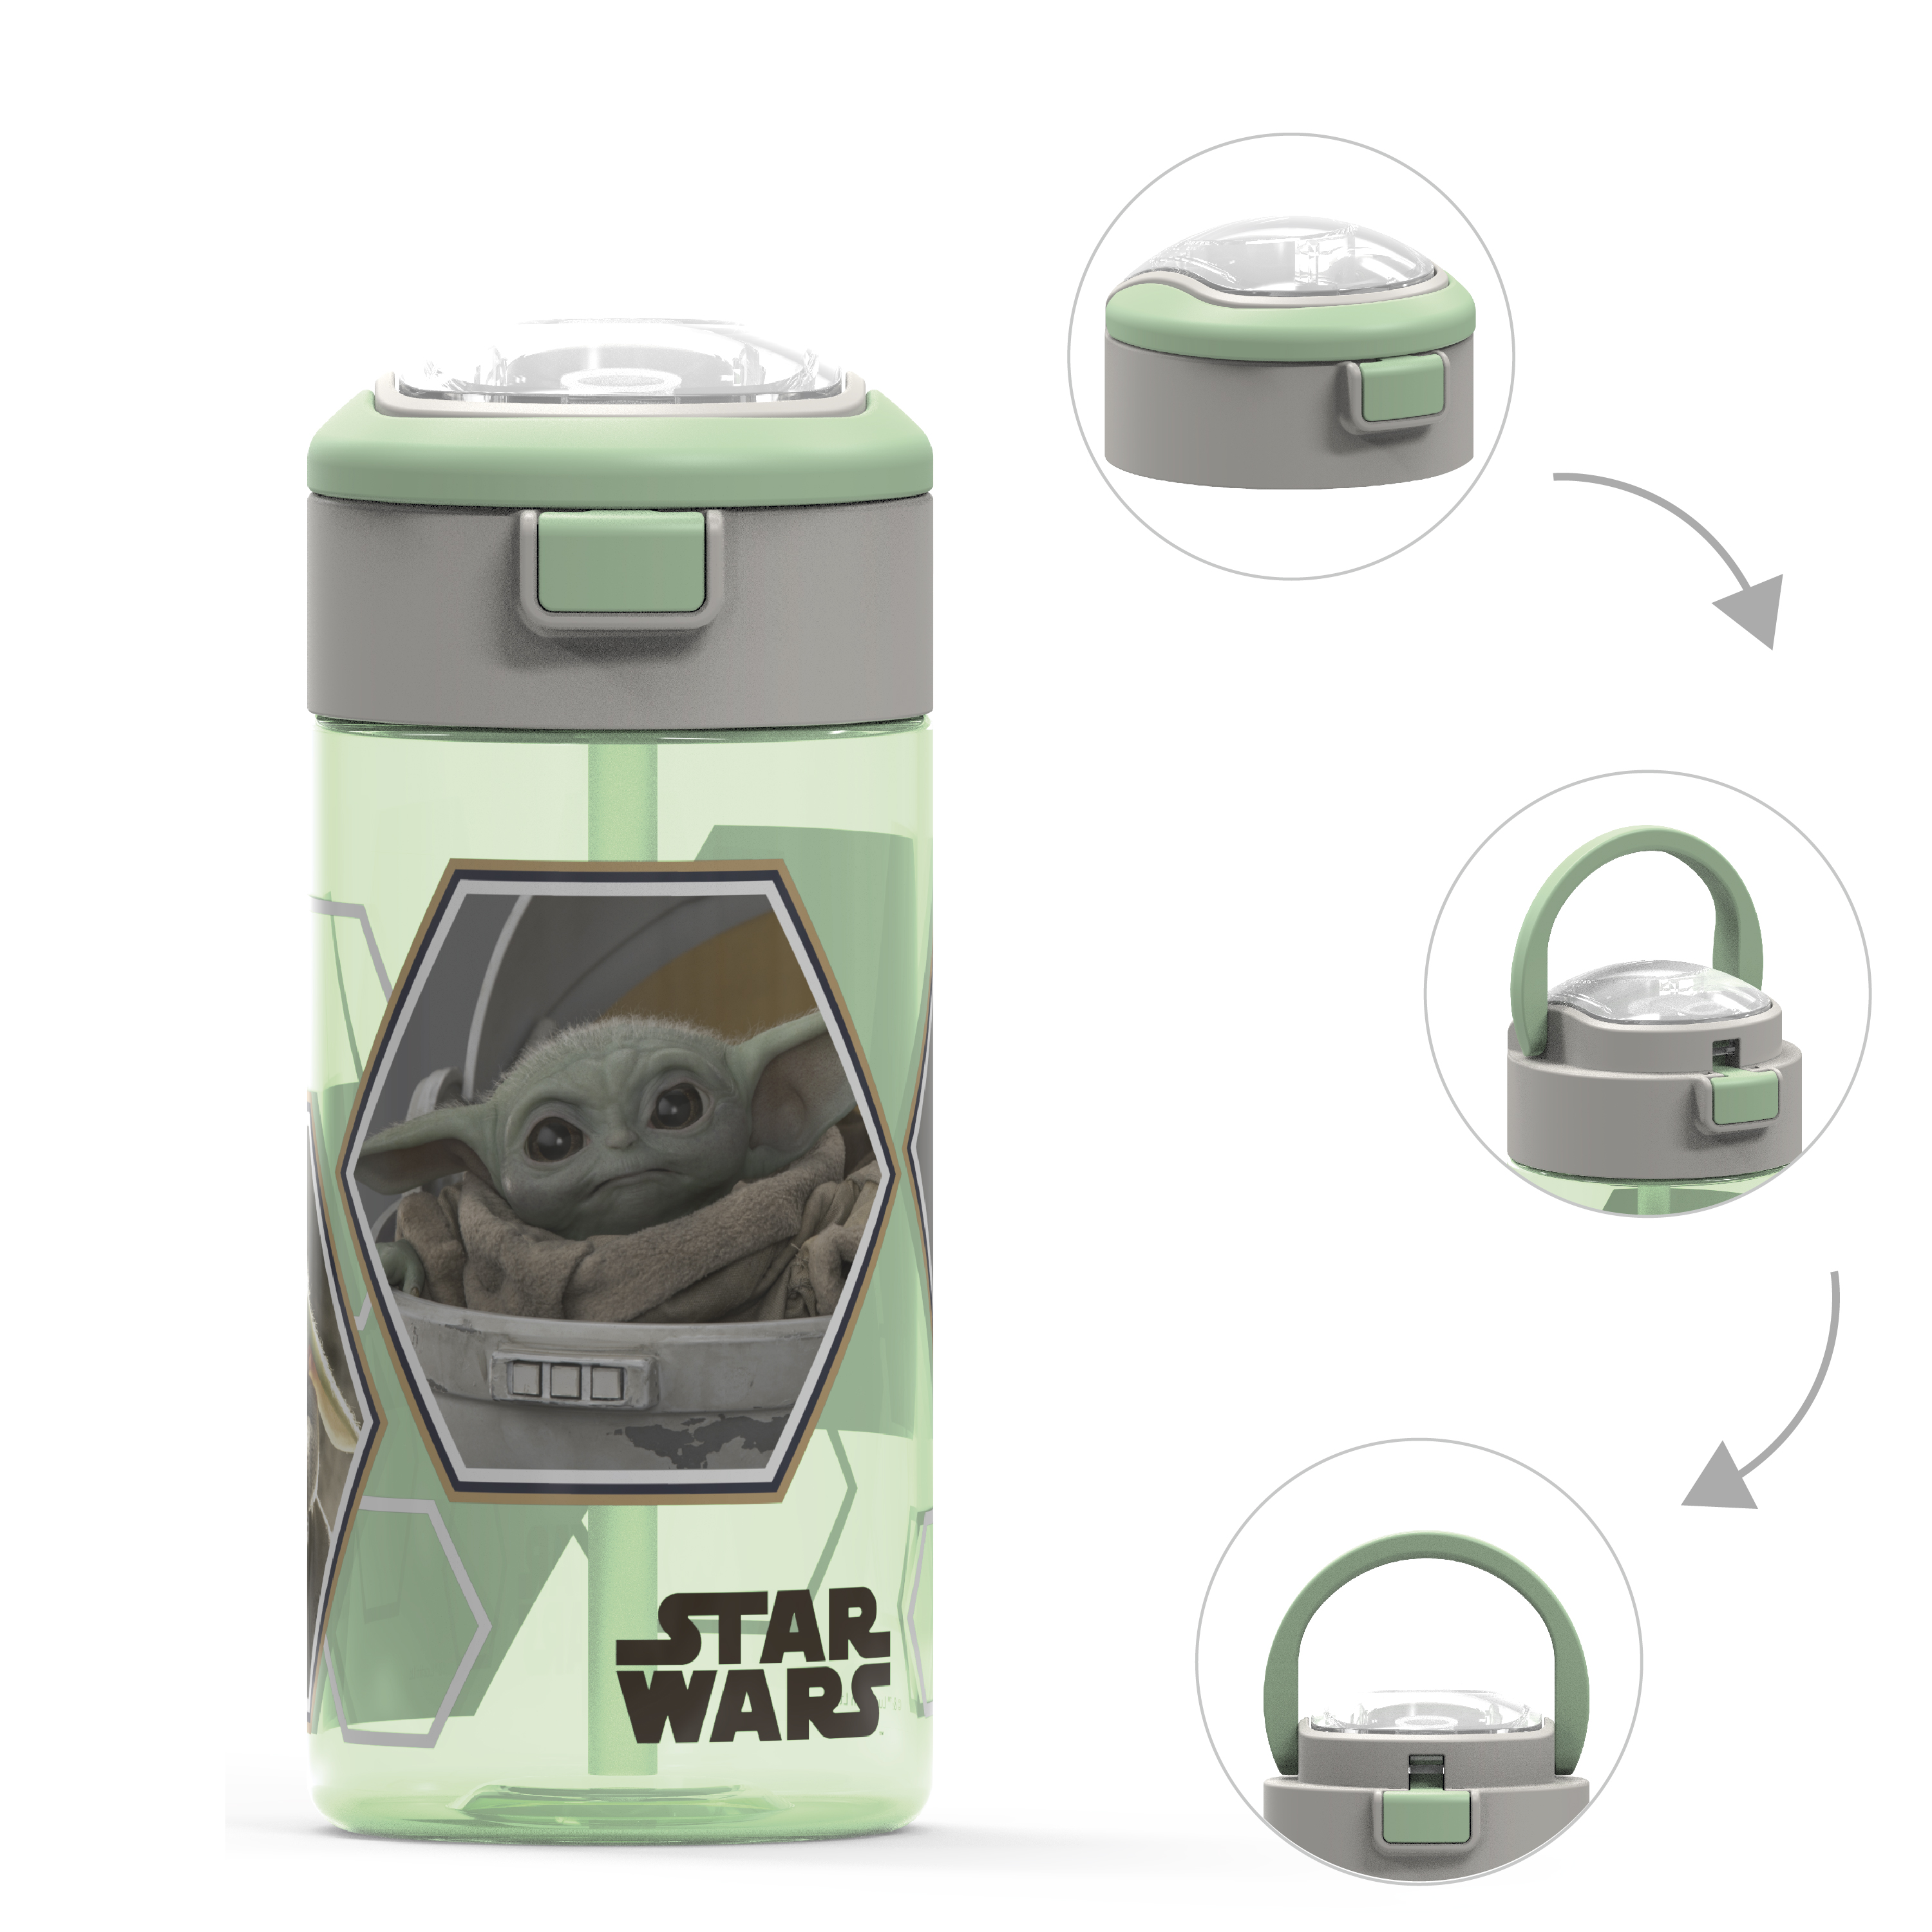 Star Wars: The Mandalorian 18 ounce Reusable Water Bottle with Straw, The Mandalorian slideshow image 1